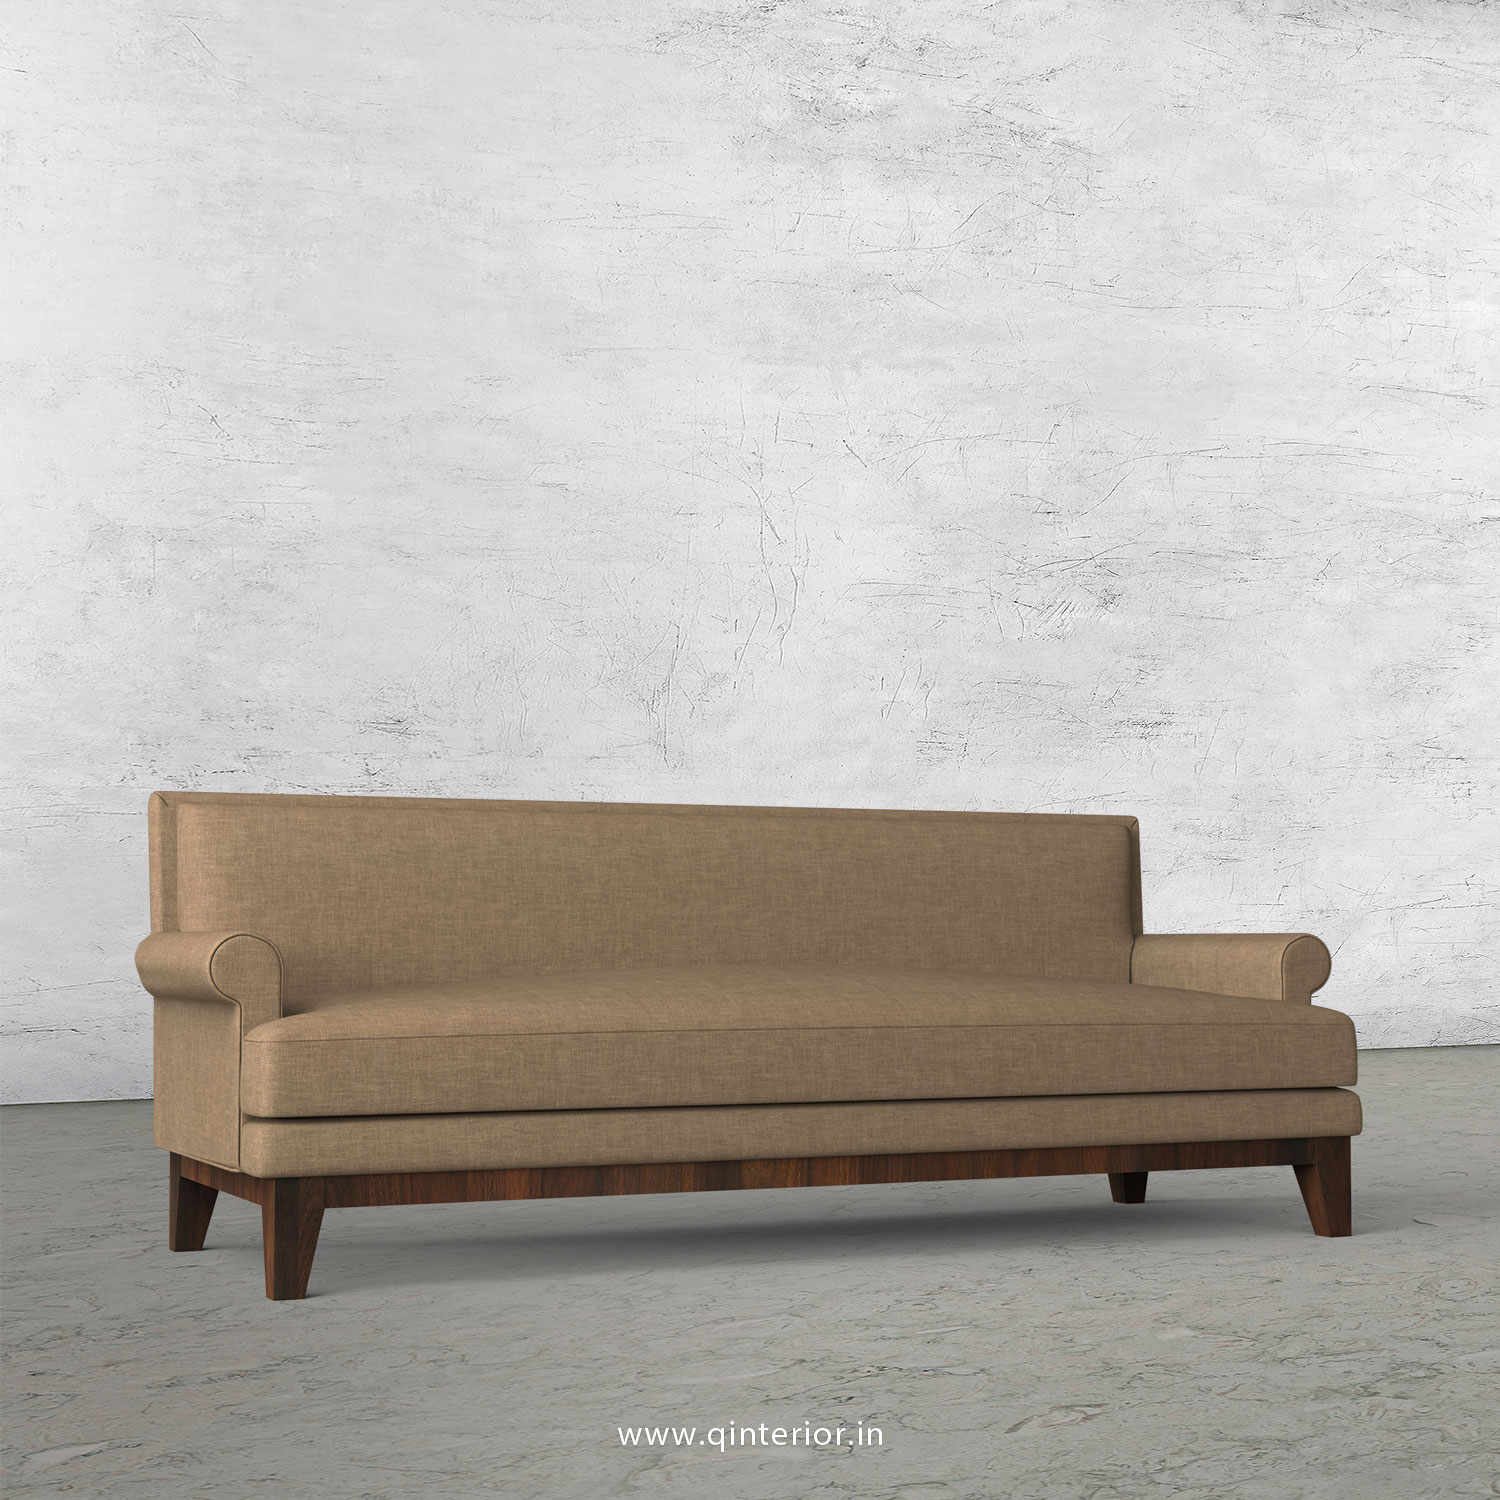 Aviana 3 Seater Sofa in Cotton Plain - SFA001 CP08